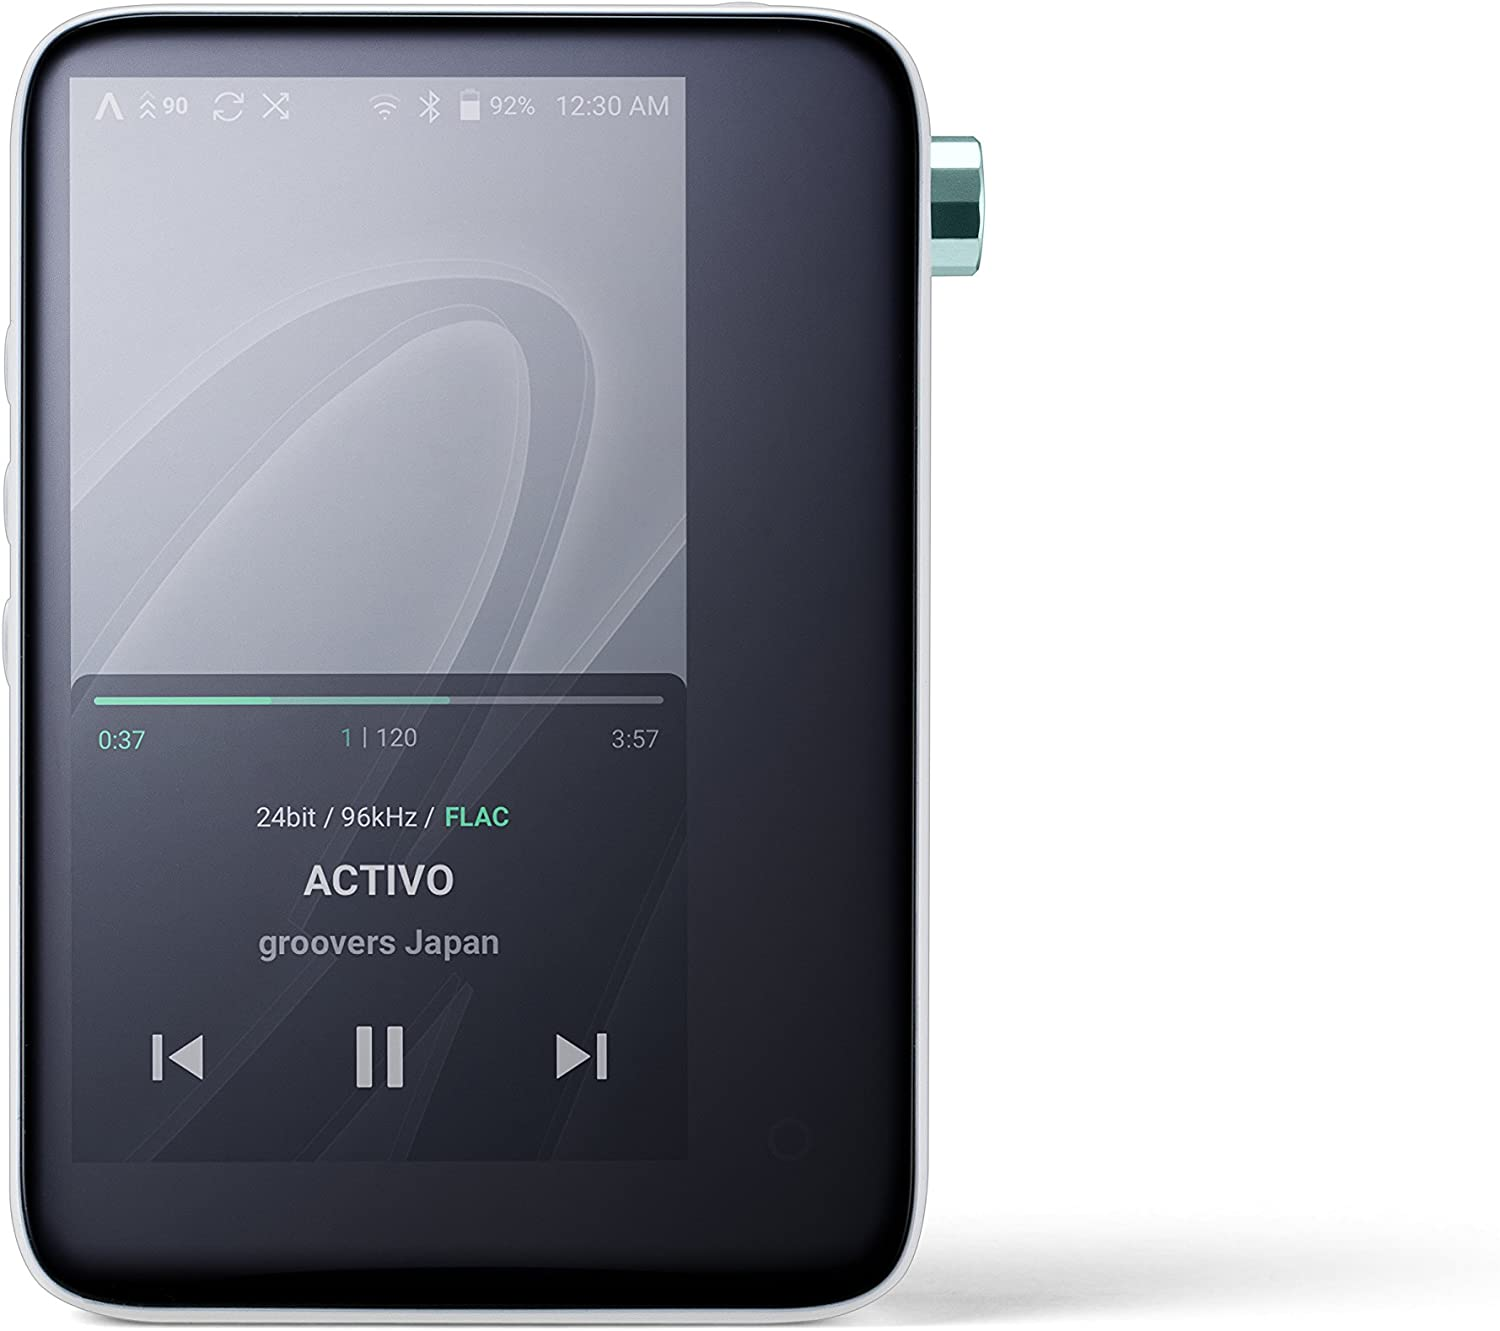 ACTIVO CT10 High Resolution Portable Music Player: Small, Stylish Design, MP3/Lossless Formats, Wi-Fi, BT, Streaming, 10 Hours of Playback (Cool White)